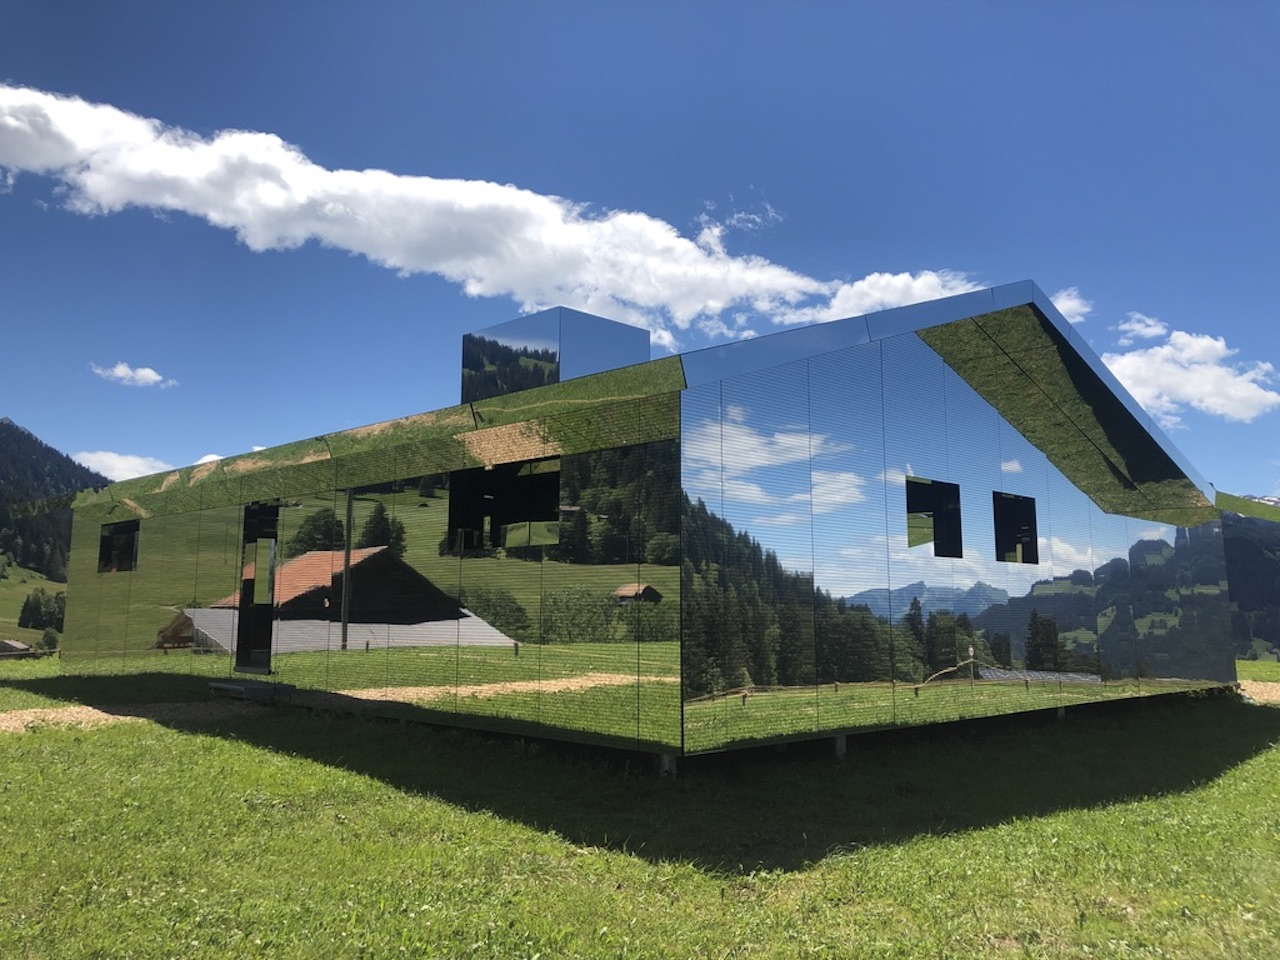 Home Swiss Home – Mirage Gstaad